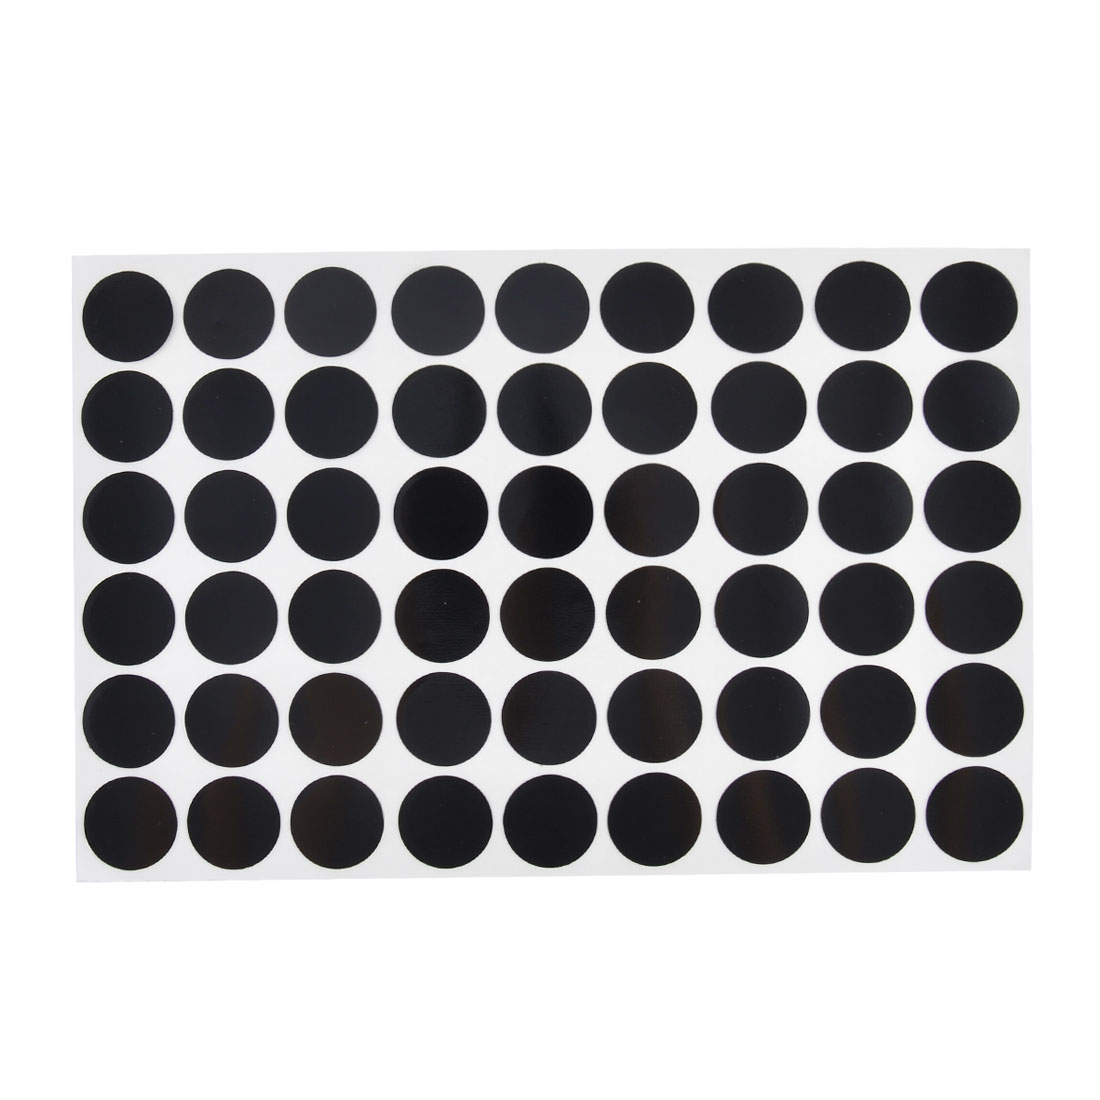 Chair Self-adhesive Screw Hole Stickers Covers on One Sheet Black 54 in 1